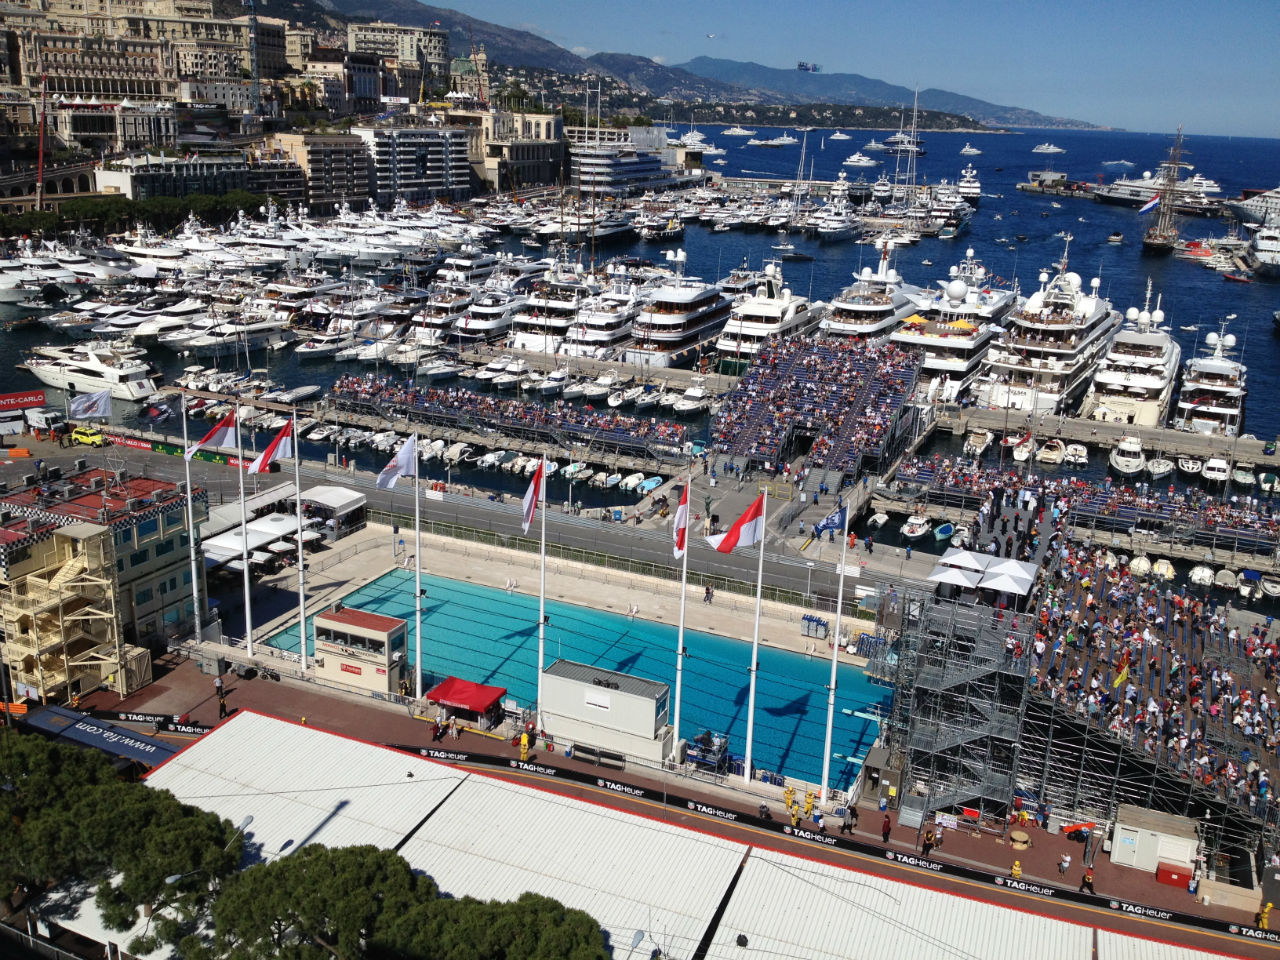 The most expensive apartment in the world is located in the Principality of Monaco